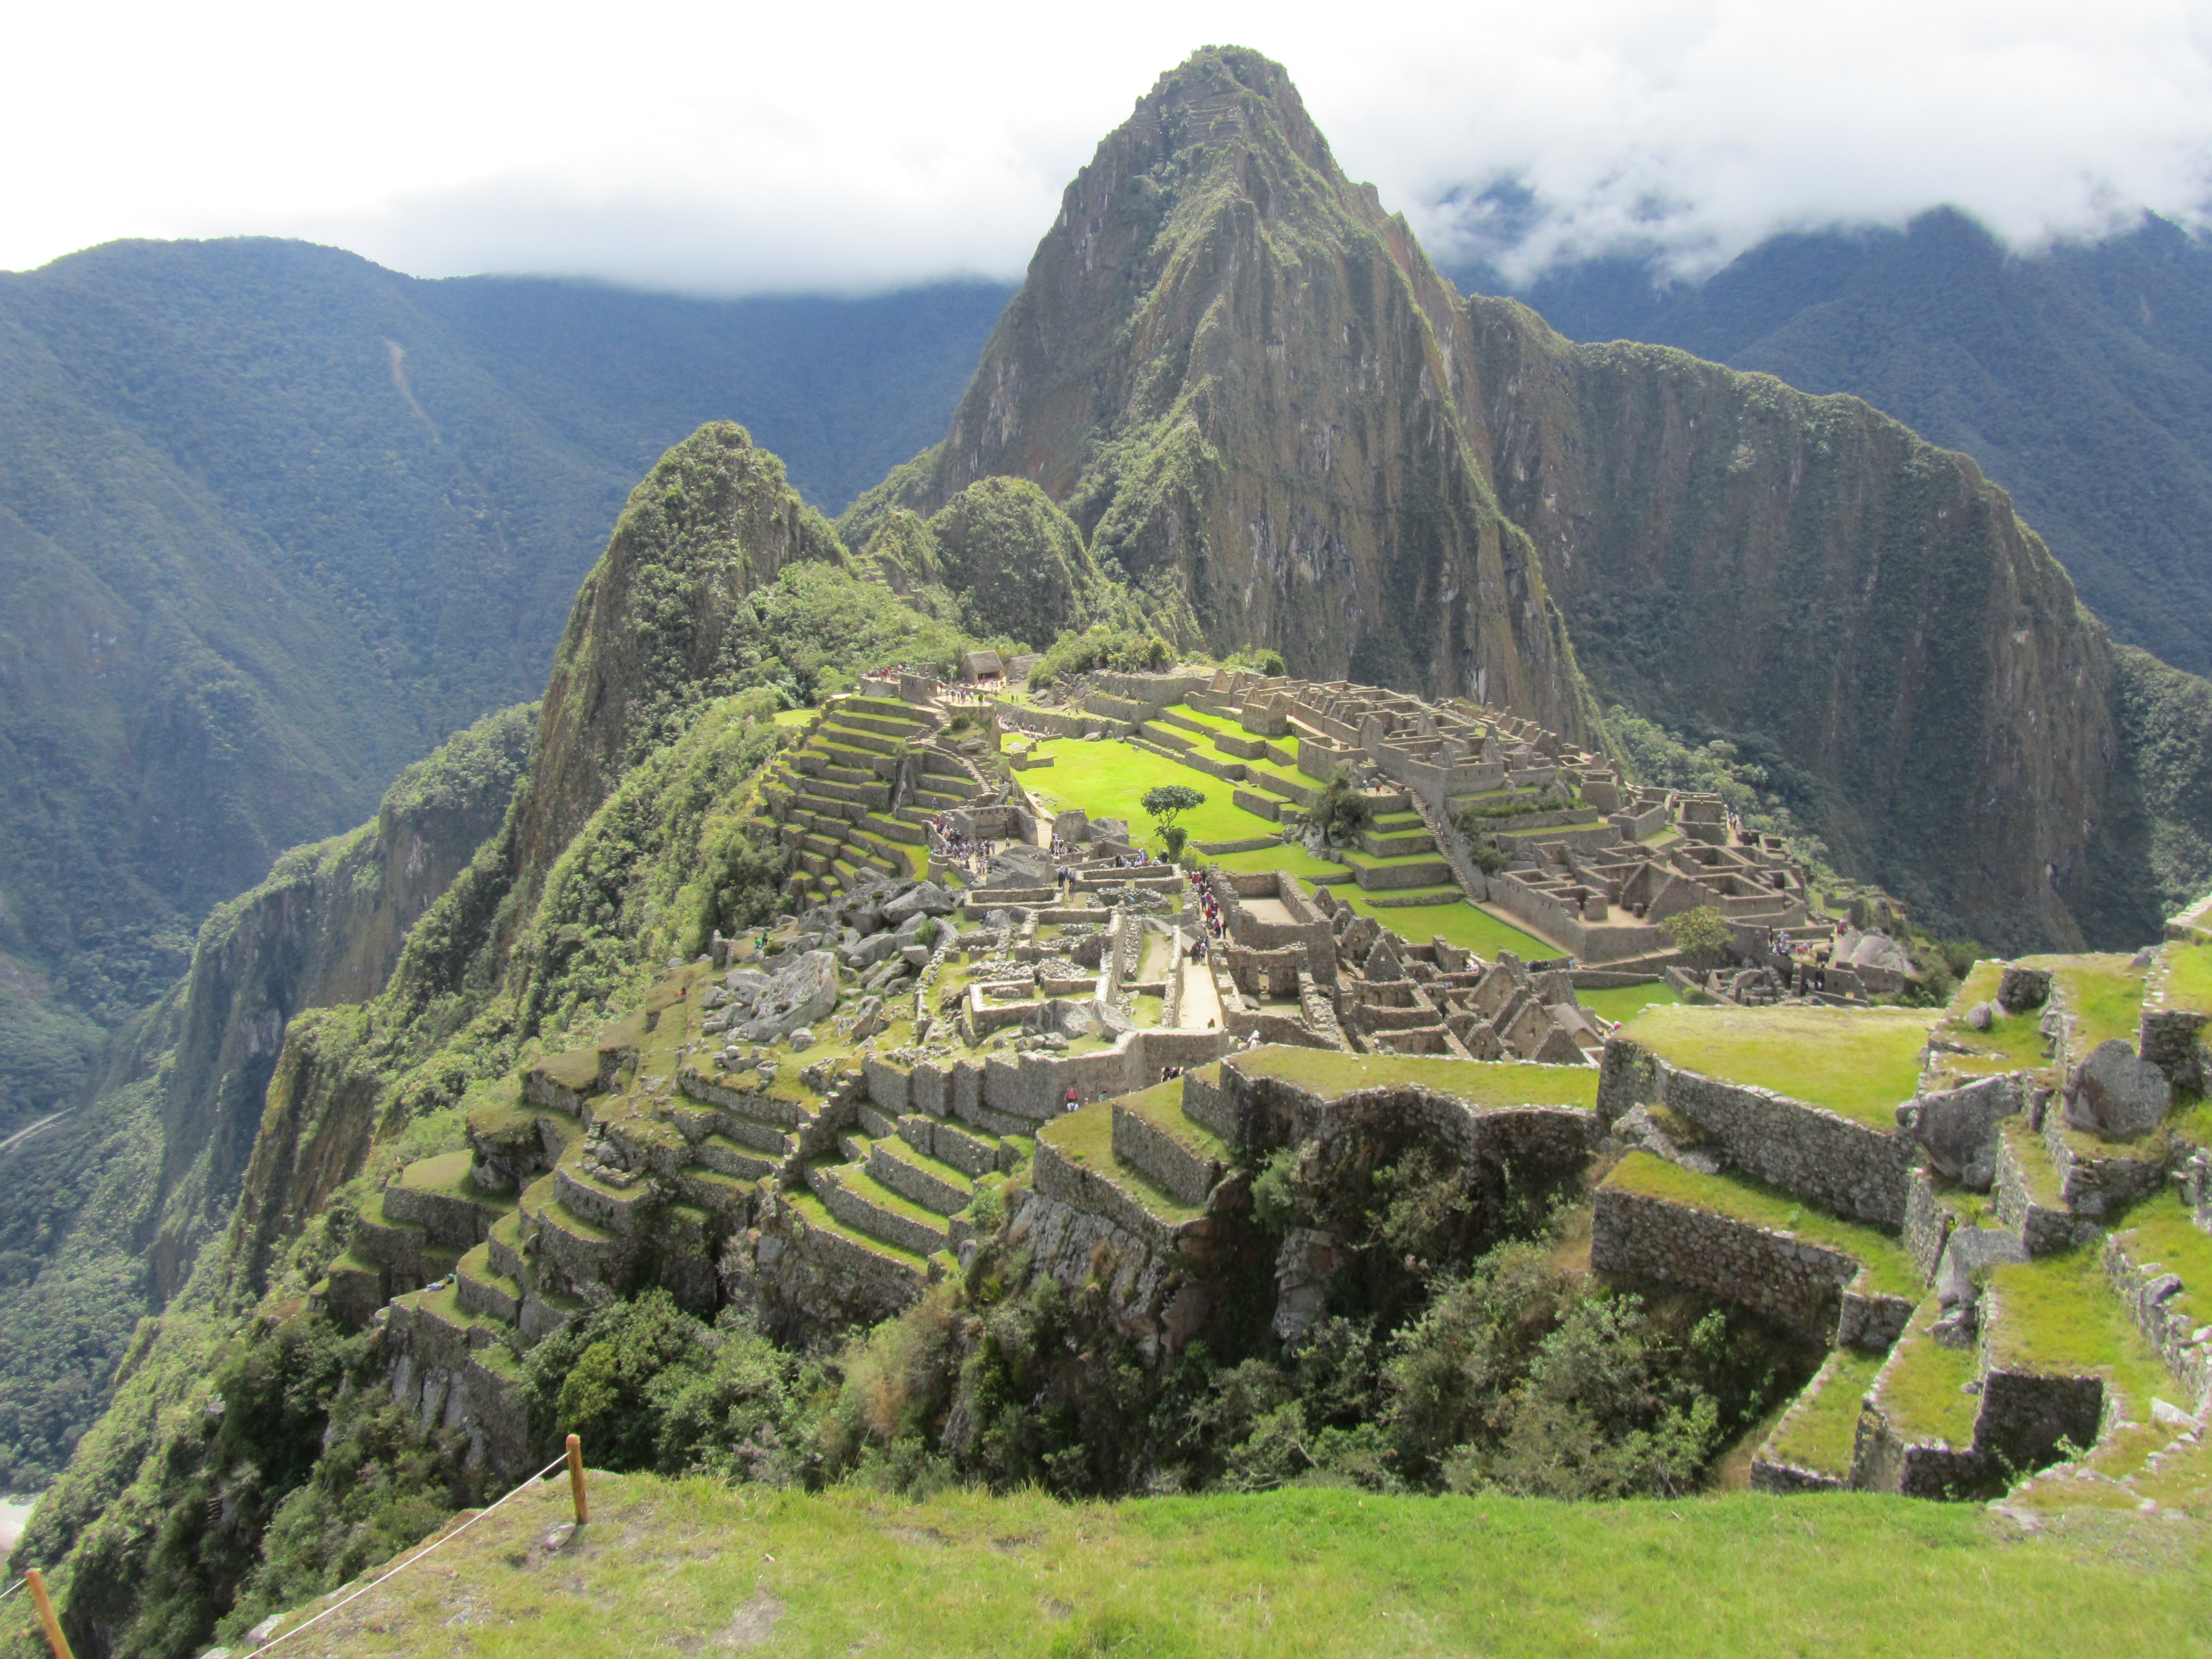 Summer Program - Travel And Tourism | Experiment in International Living: Peru - Ancient and Contemporary Exploration